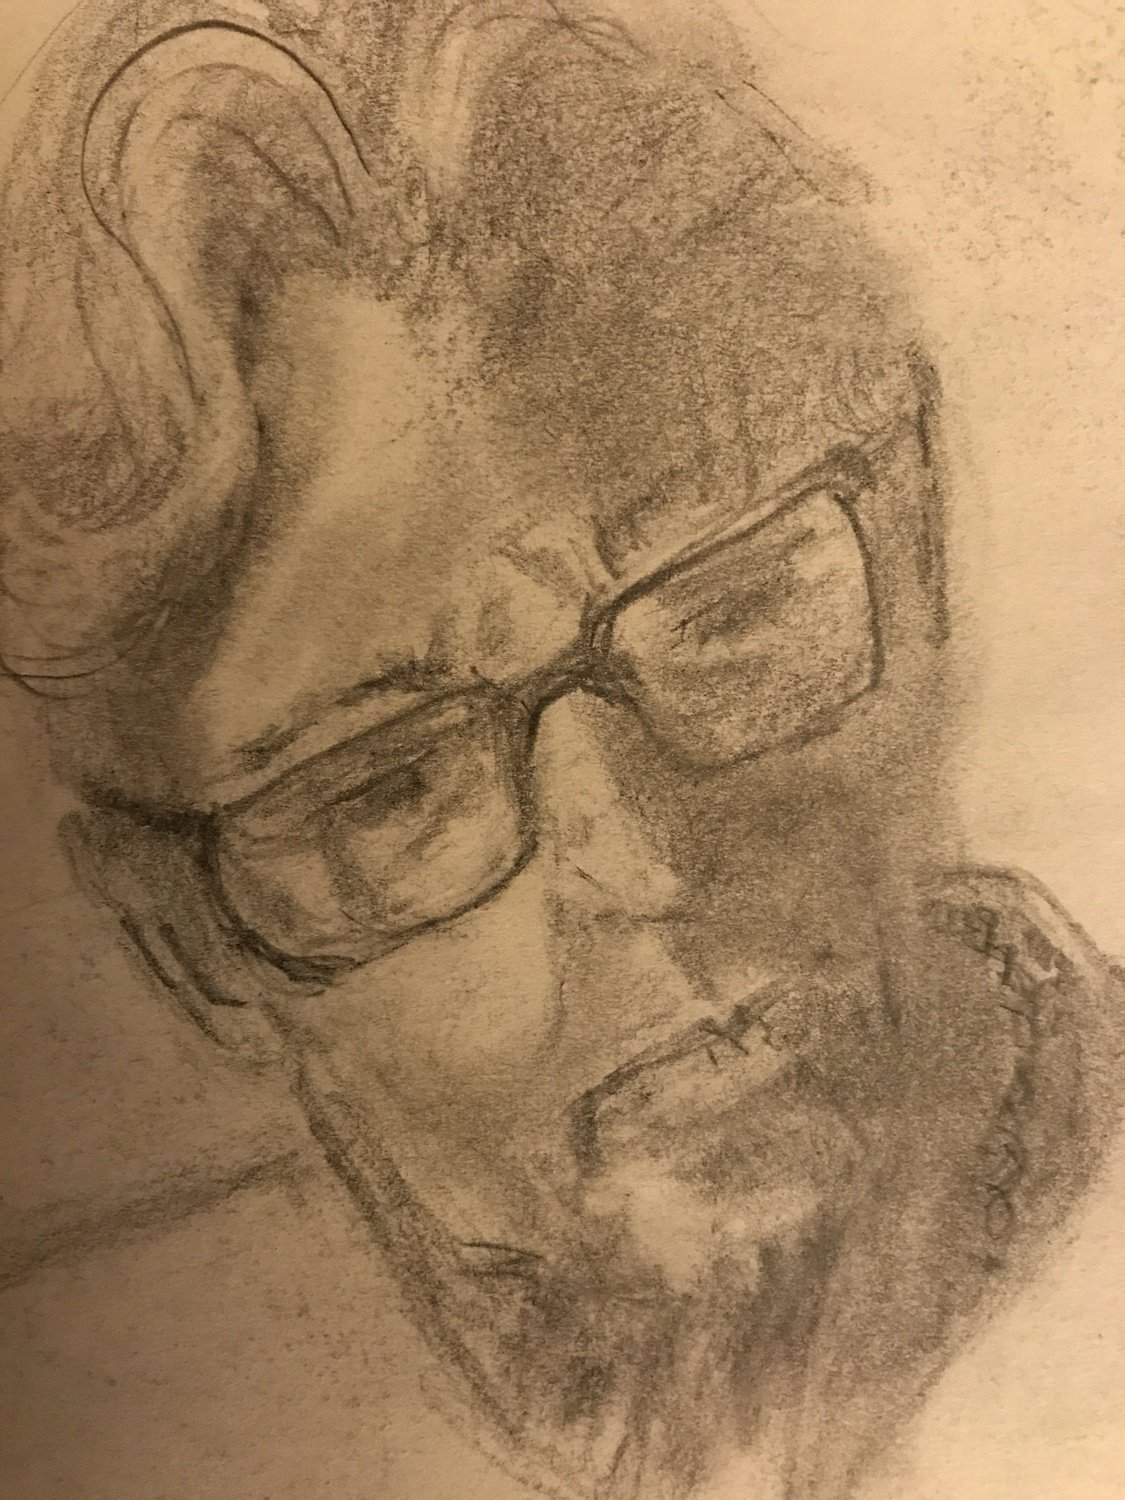 Coffee And A Sketch: Clapton